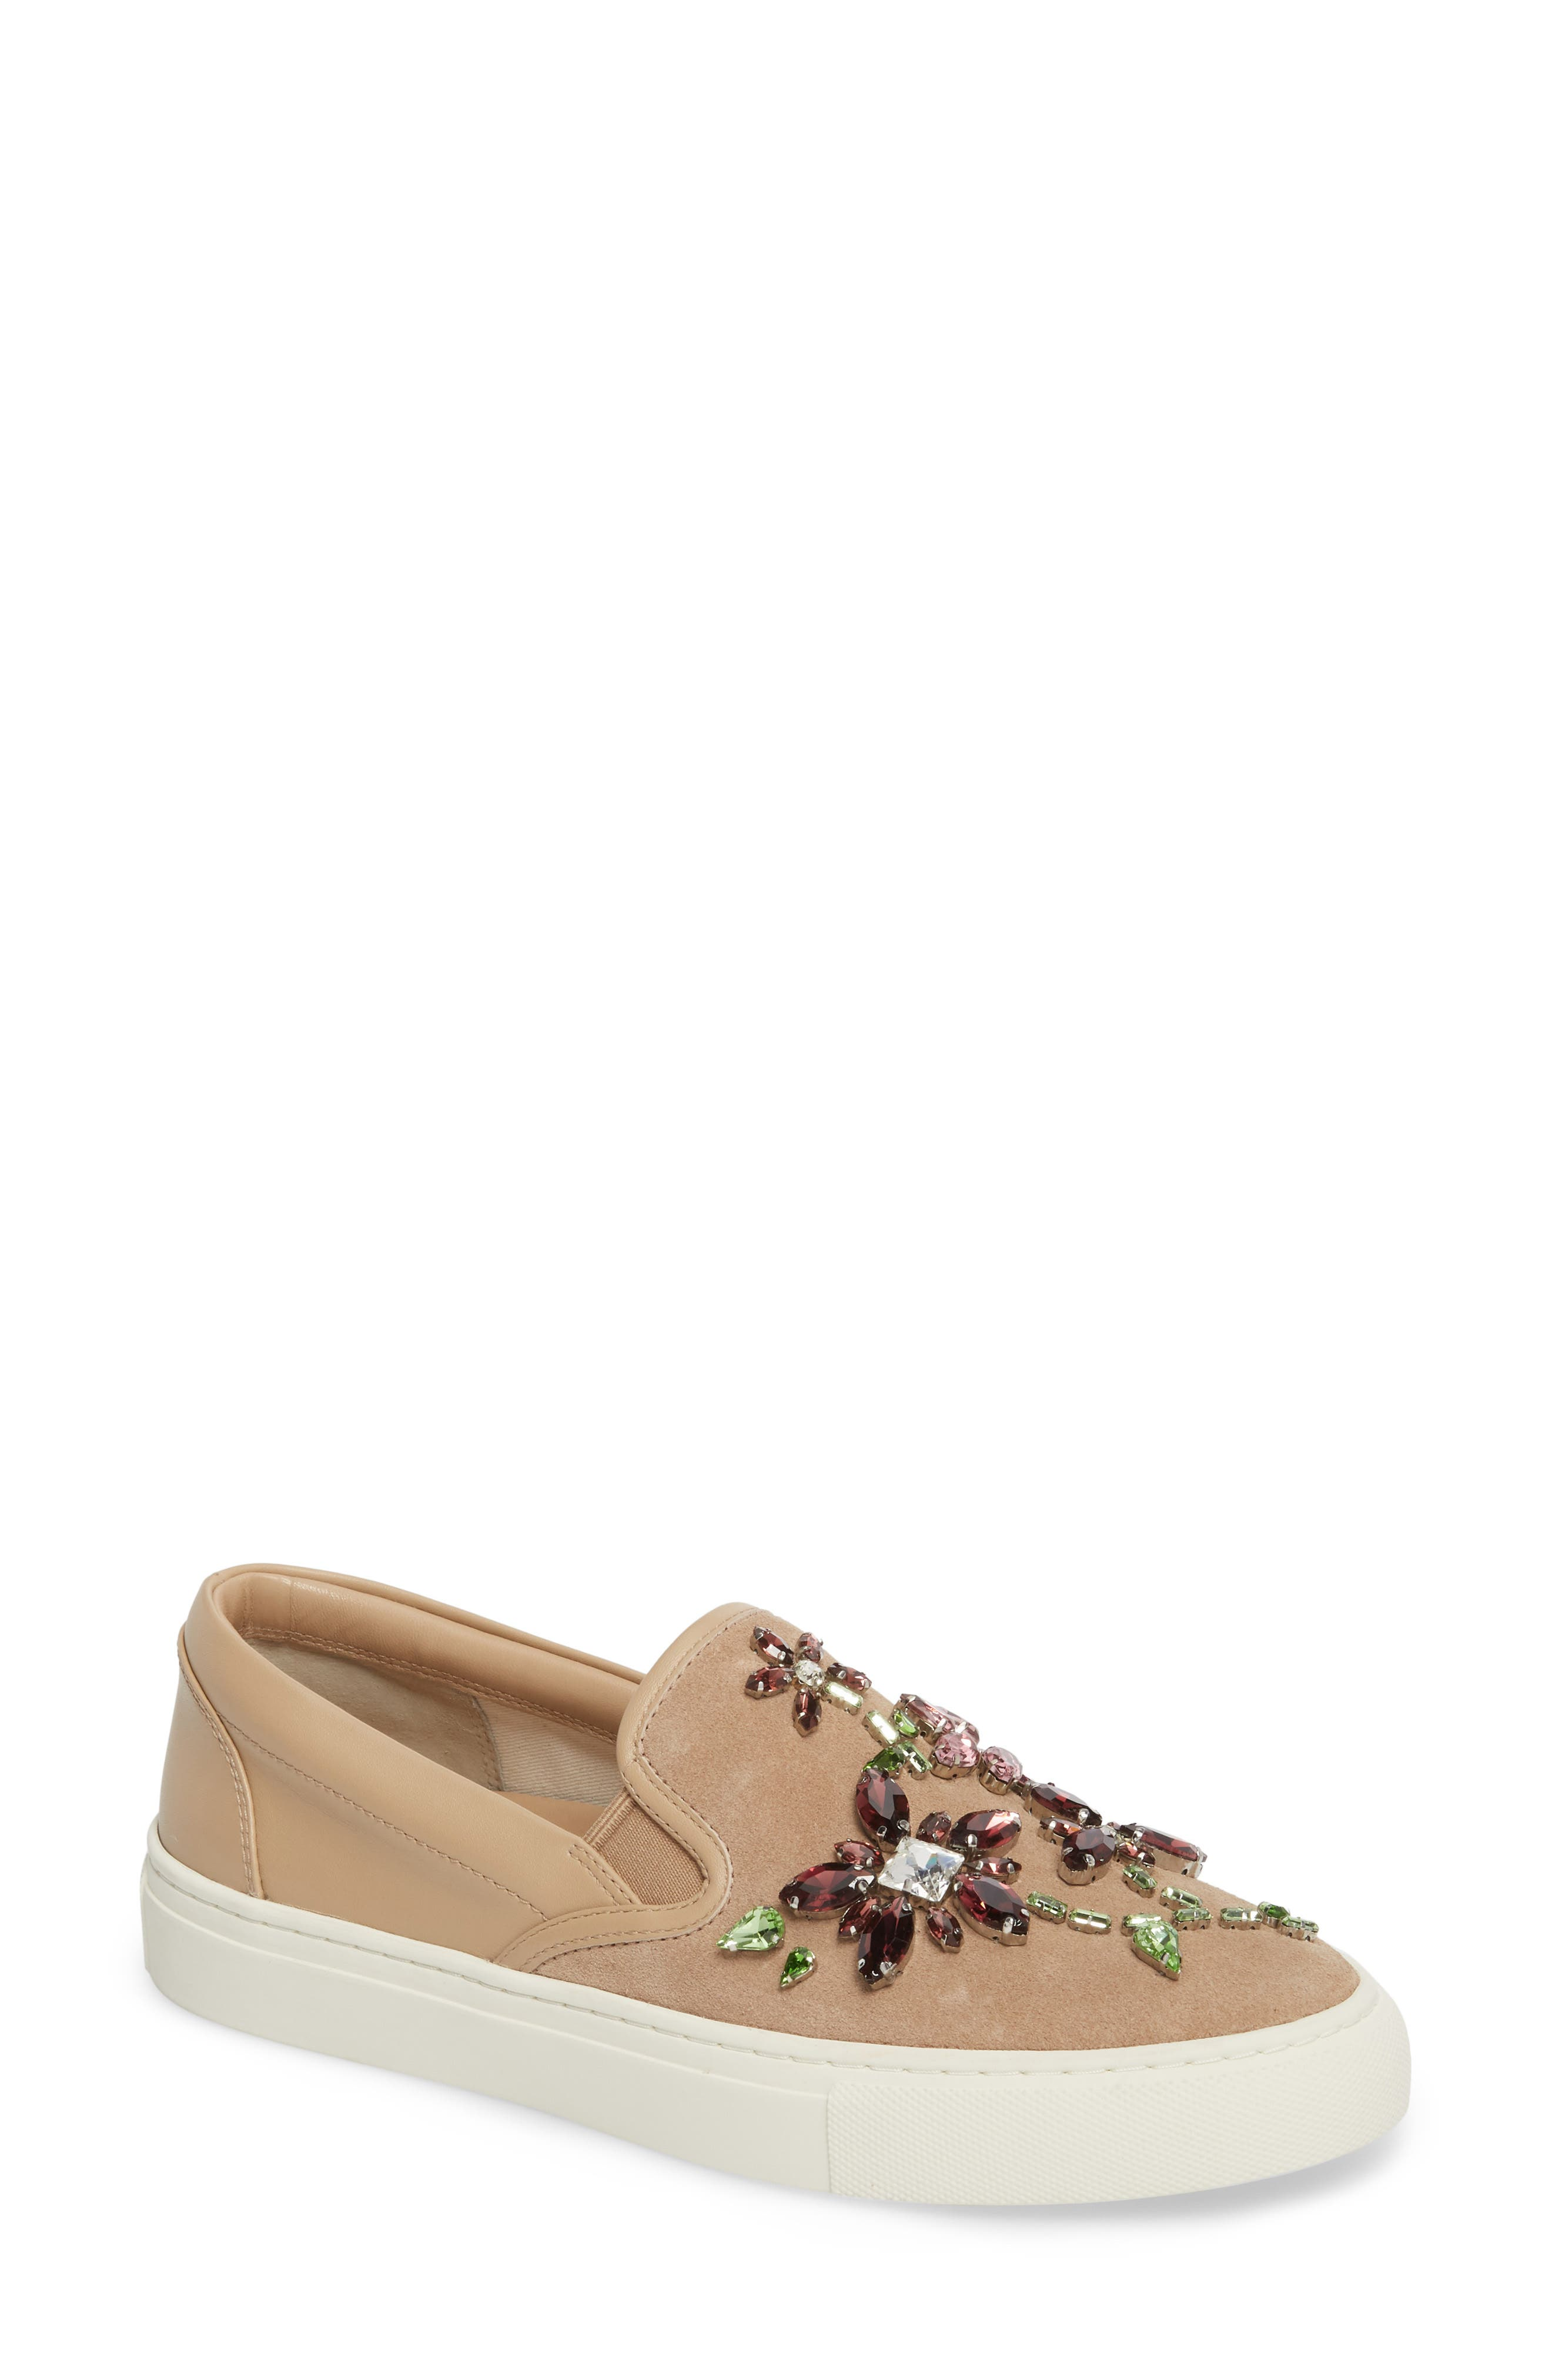 Meadow Embellished Slip-On Sneaker,                             Main thumbnail 1, color,                             Perfect Sand/ Multi